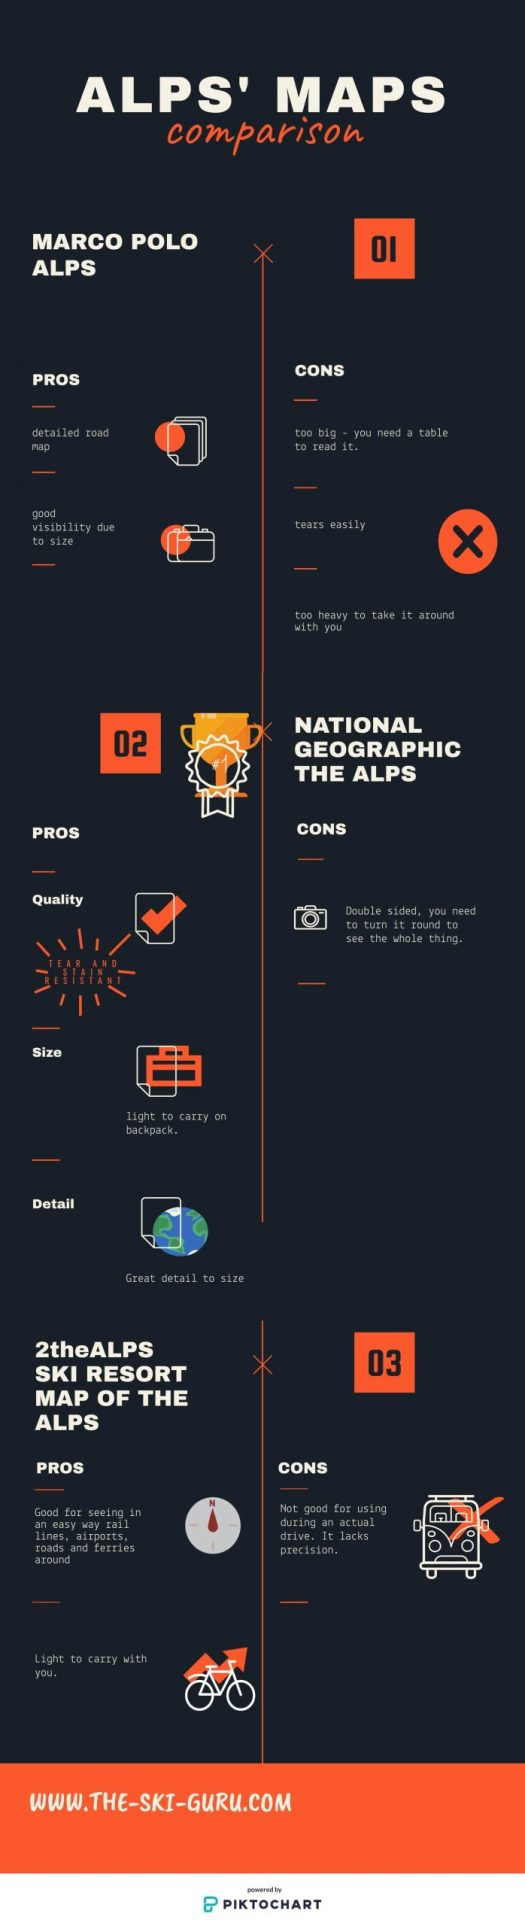 Comparing the Maps of the Alps. Infographic-Copyright-The-Ski-Guru.